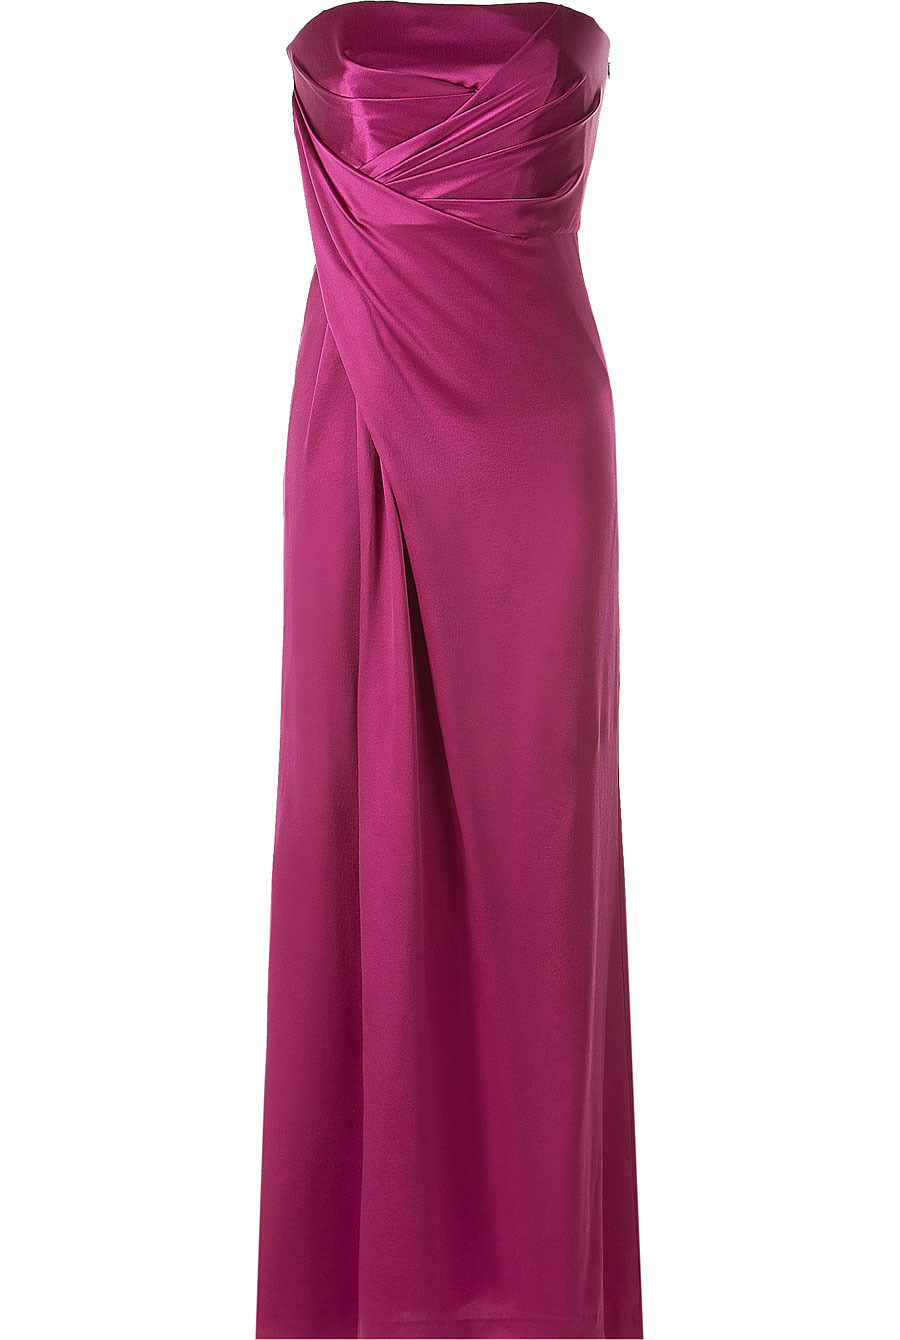 Pink Strapless Gown - neckline: strapless (straight/sweetheart); pattern: plain; style: maxi dress; sleeve style: strapless; waist detail: fitted waist; hip detail: fitted at hip; bust detail: ruching/gathering/draping/layers/pintuck pleats at bust; predominant colour: hot pink; occasions: evening, occasion; length: floor length; fit: body skimming; fibres: silk - 100%; material texture: satin; sleeve length: sleeveless; texture group: structured shiny - satin/tafetta/silk etc.; pattern type: fabric; pattern size: standard